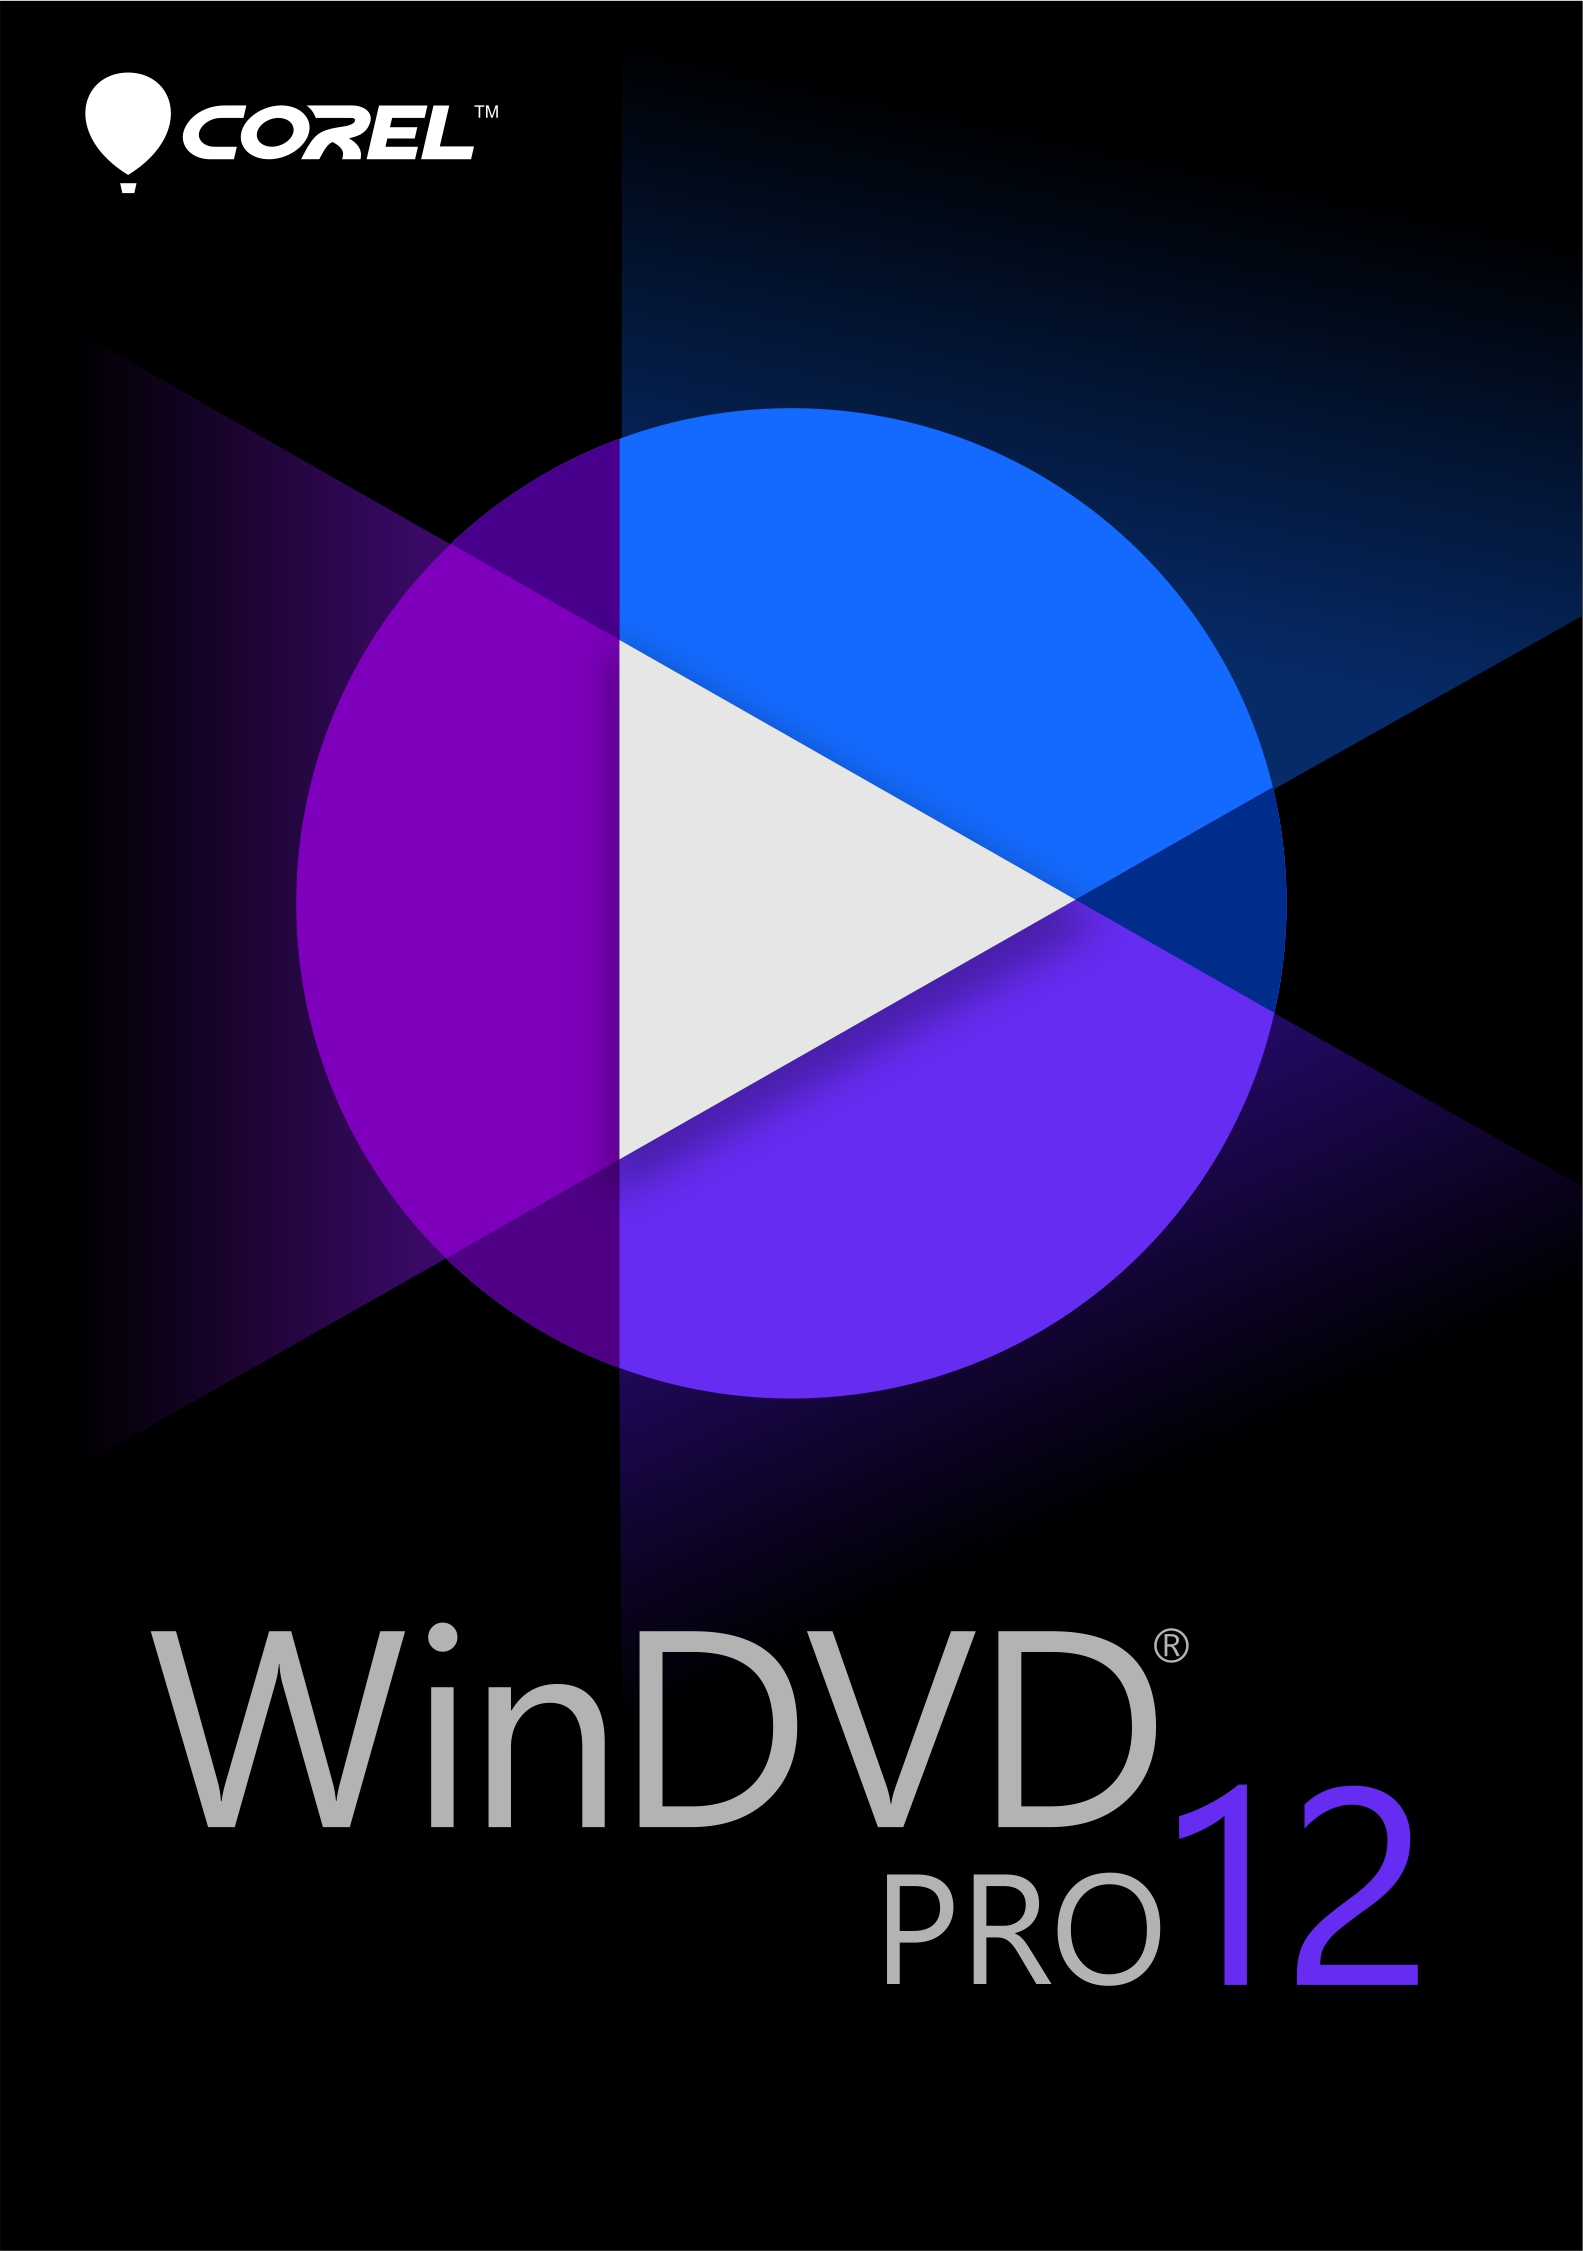 Corel WinDVD Pro 12 Movie and Media Playback Software for PC [Download] by Corel